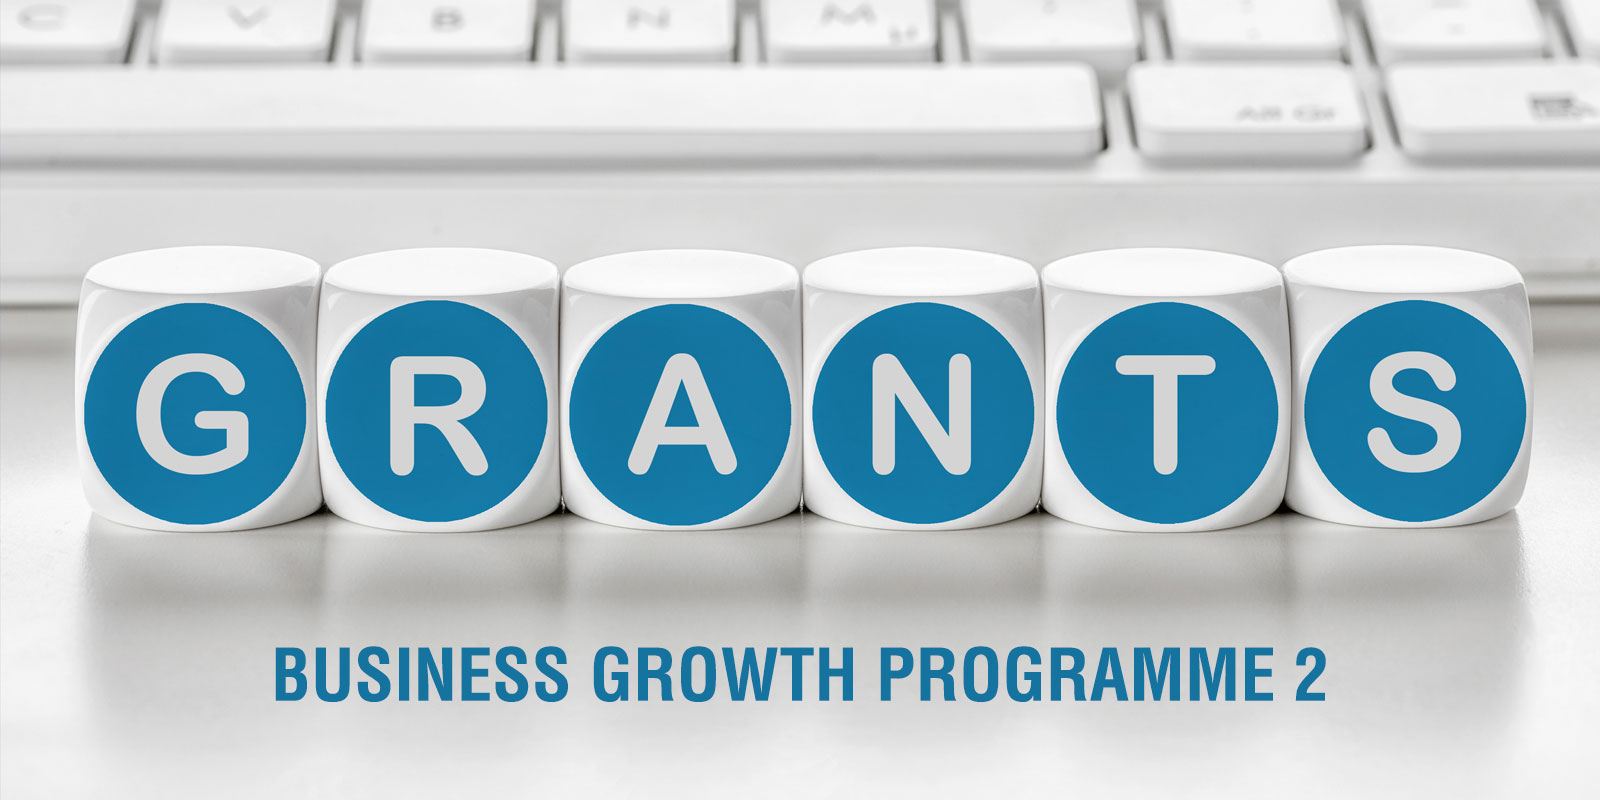 Business Growth Programme 2